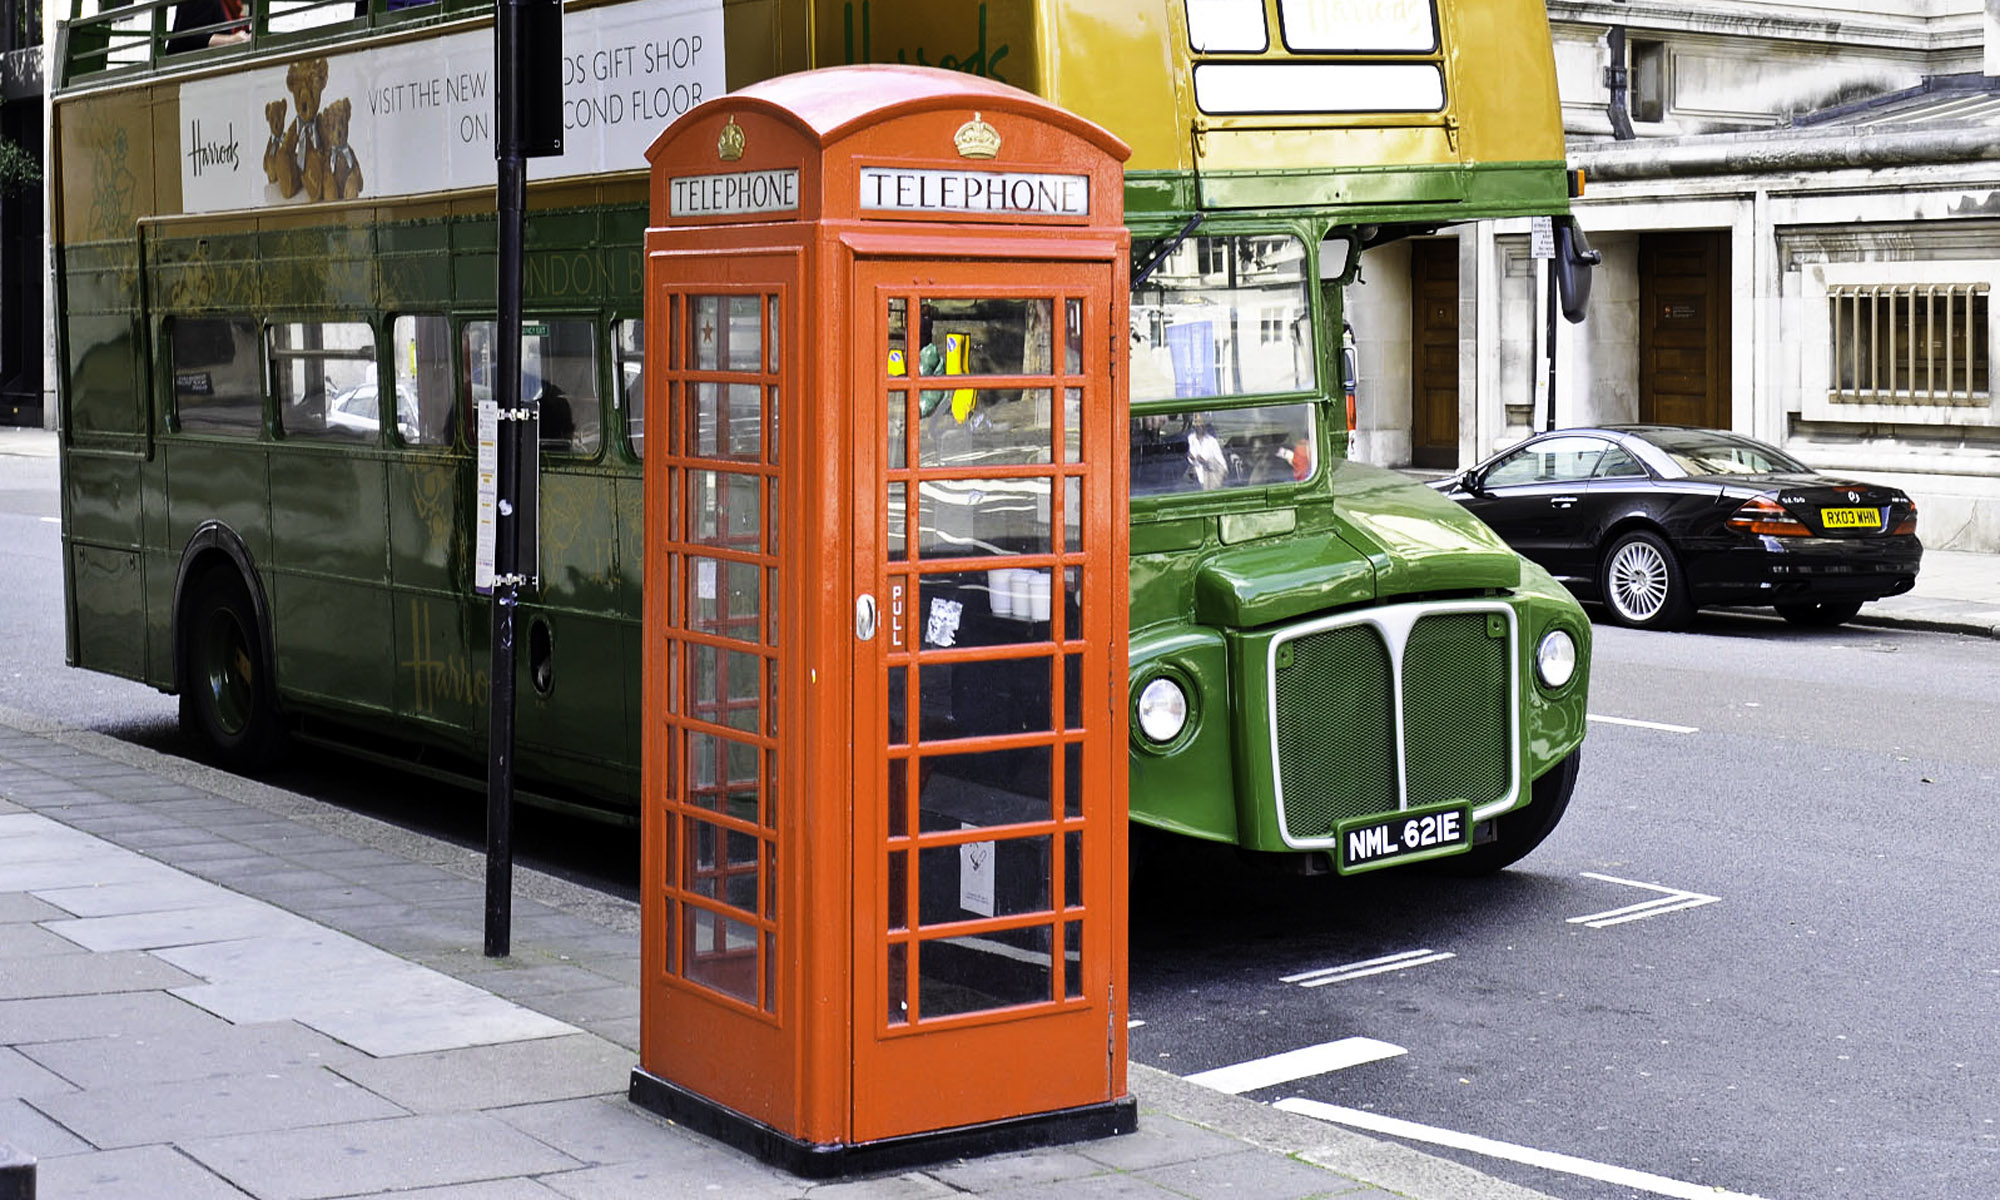 Photo of red phone box on street in London.